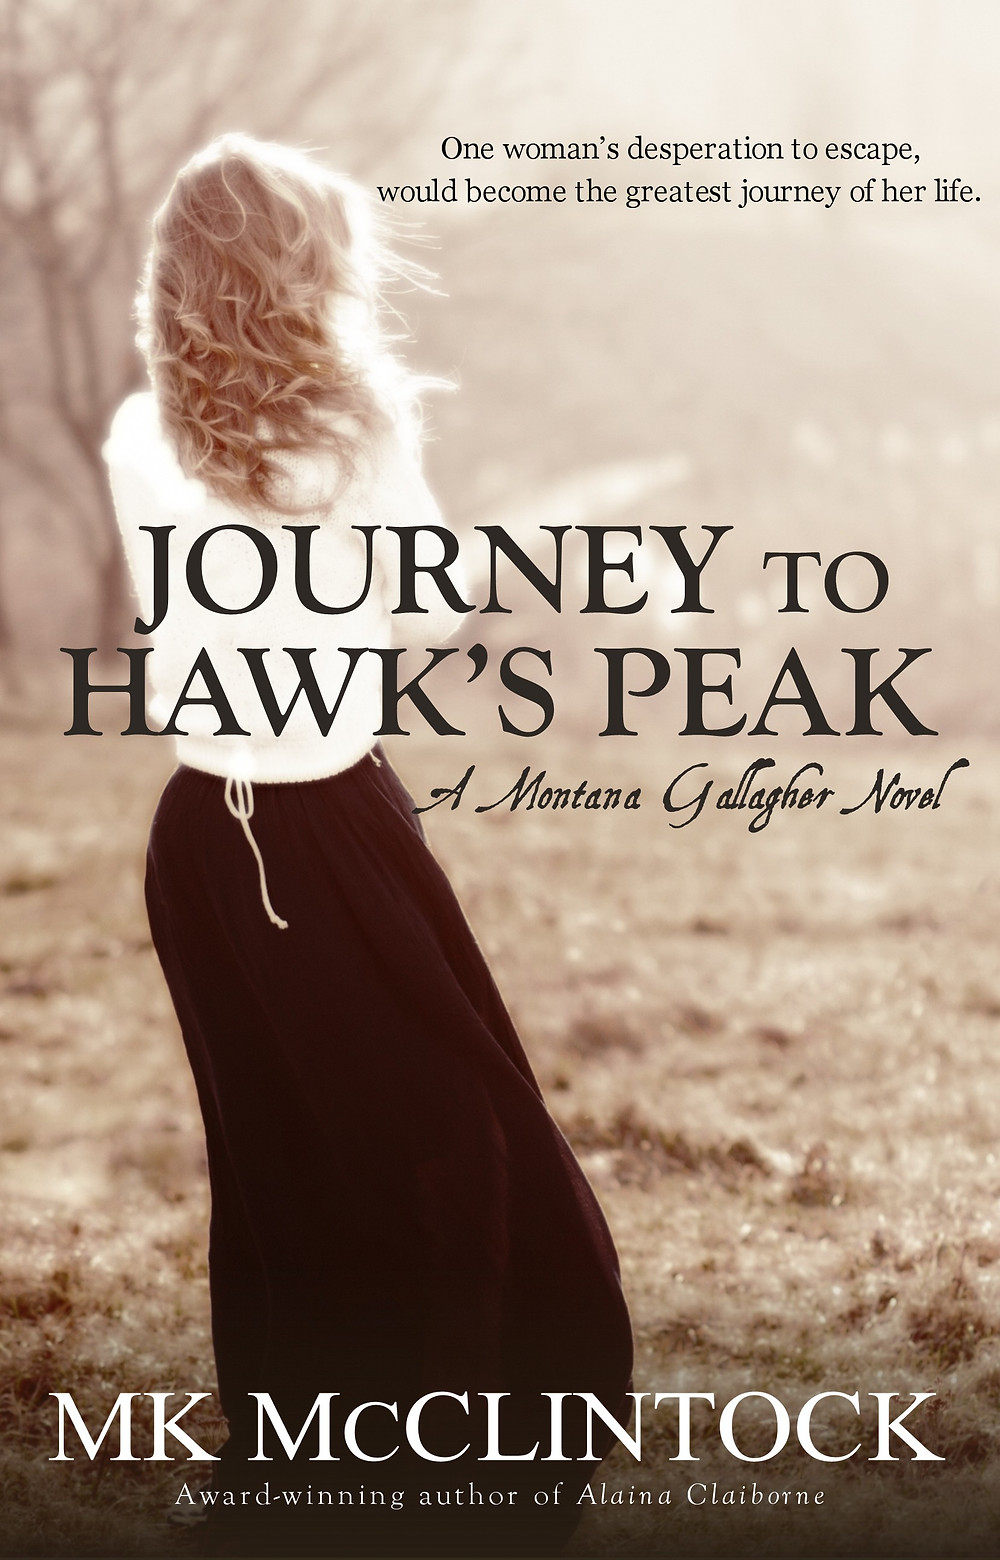 JOURNEY TO HAWK'S PEAK by MK McClintock